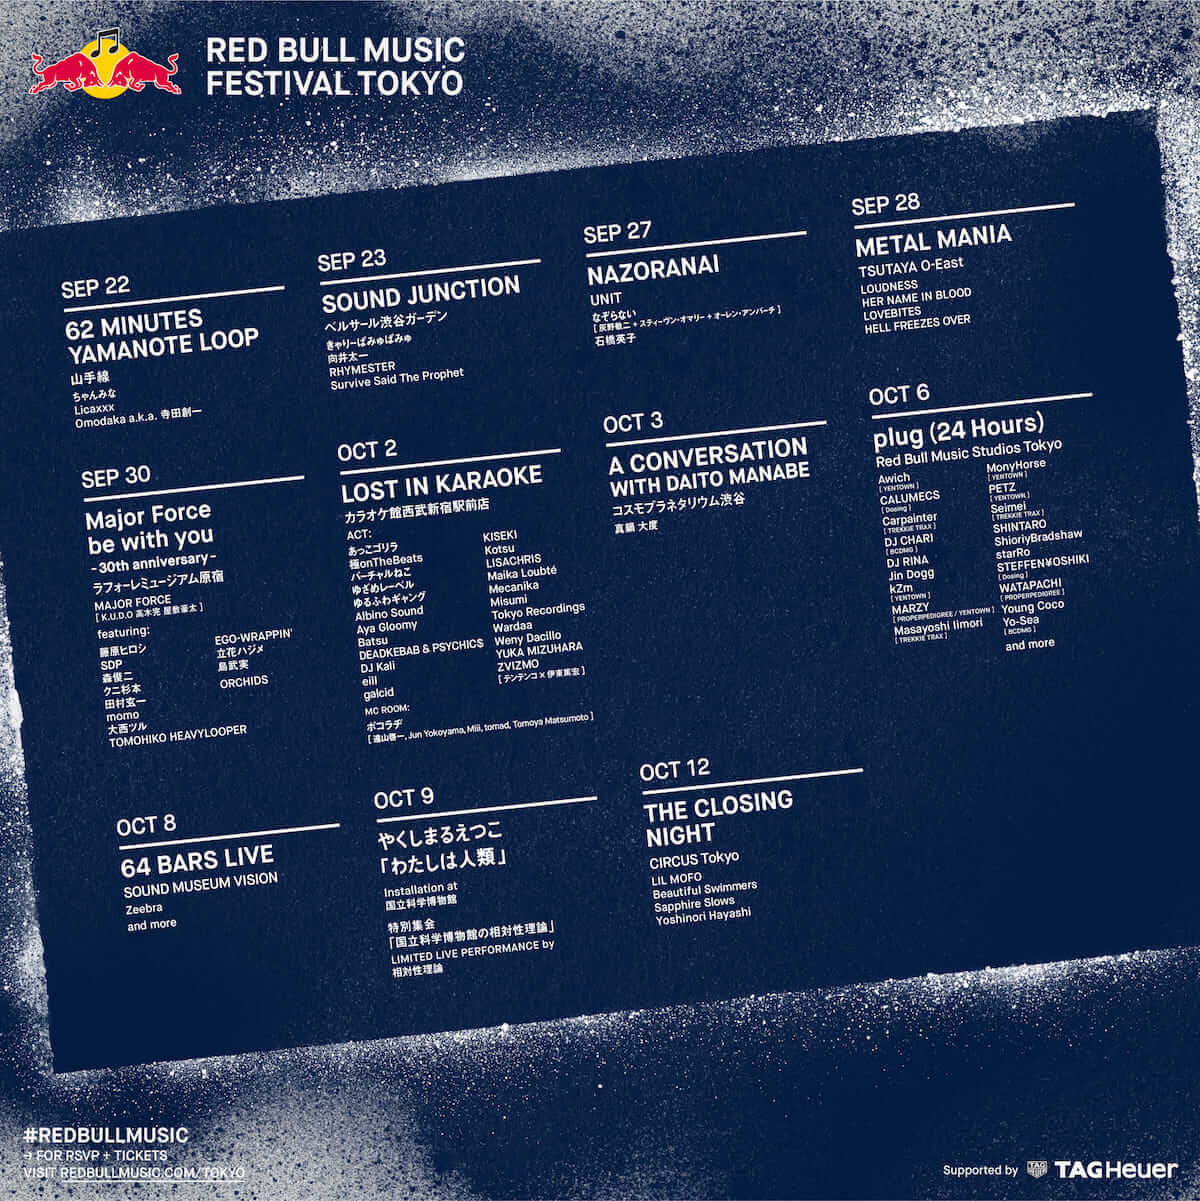 【イベントレポ】RED BULL MUSIC FESTIVAL TOKYO 2018|SOUND JUNCTION music180804-redbullmusicfestival-6-1200x1201